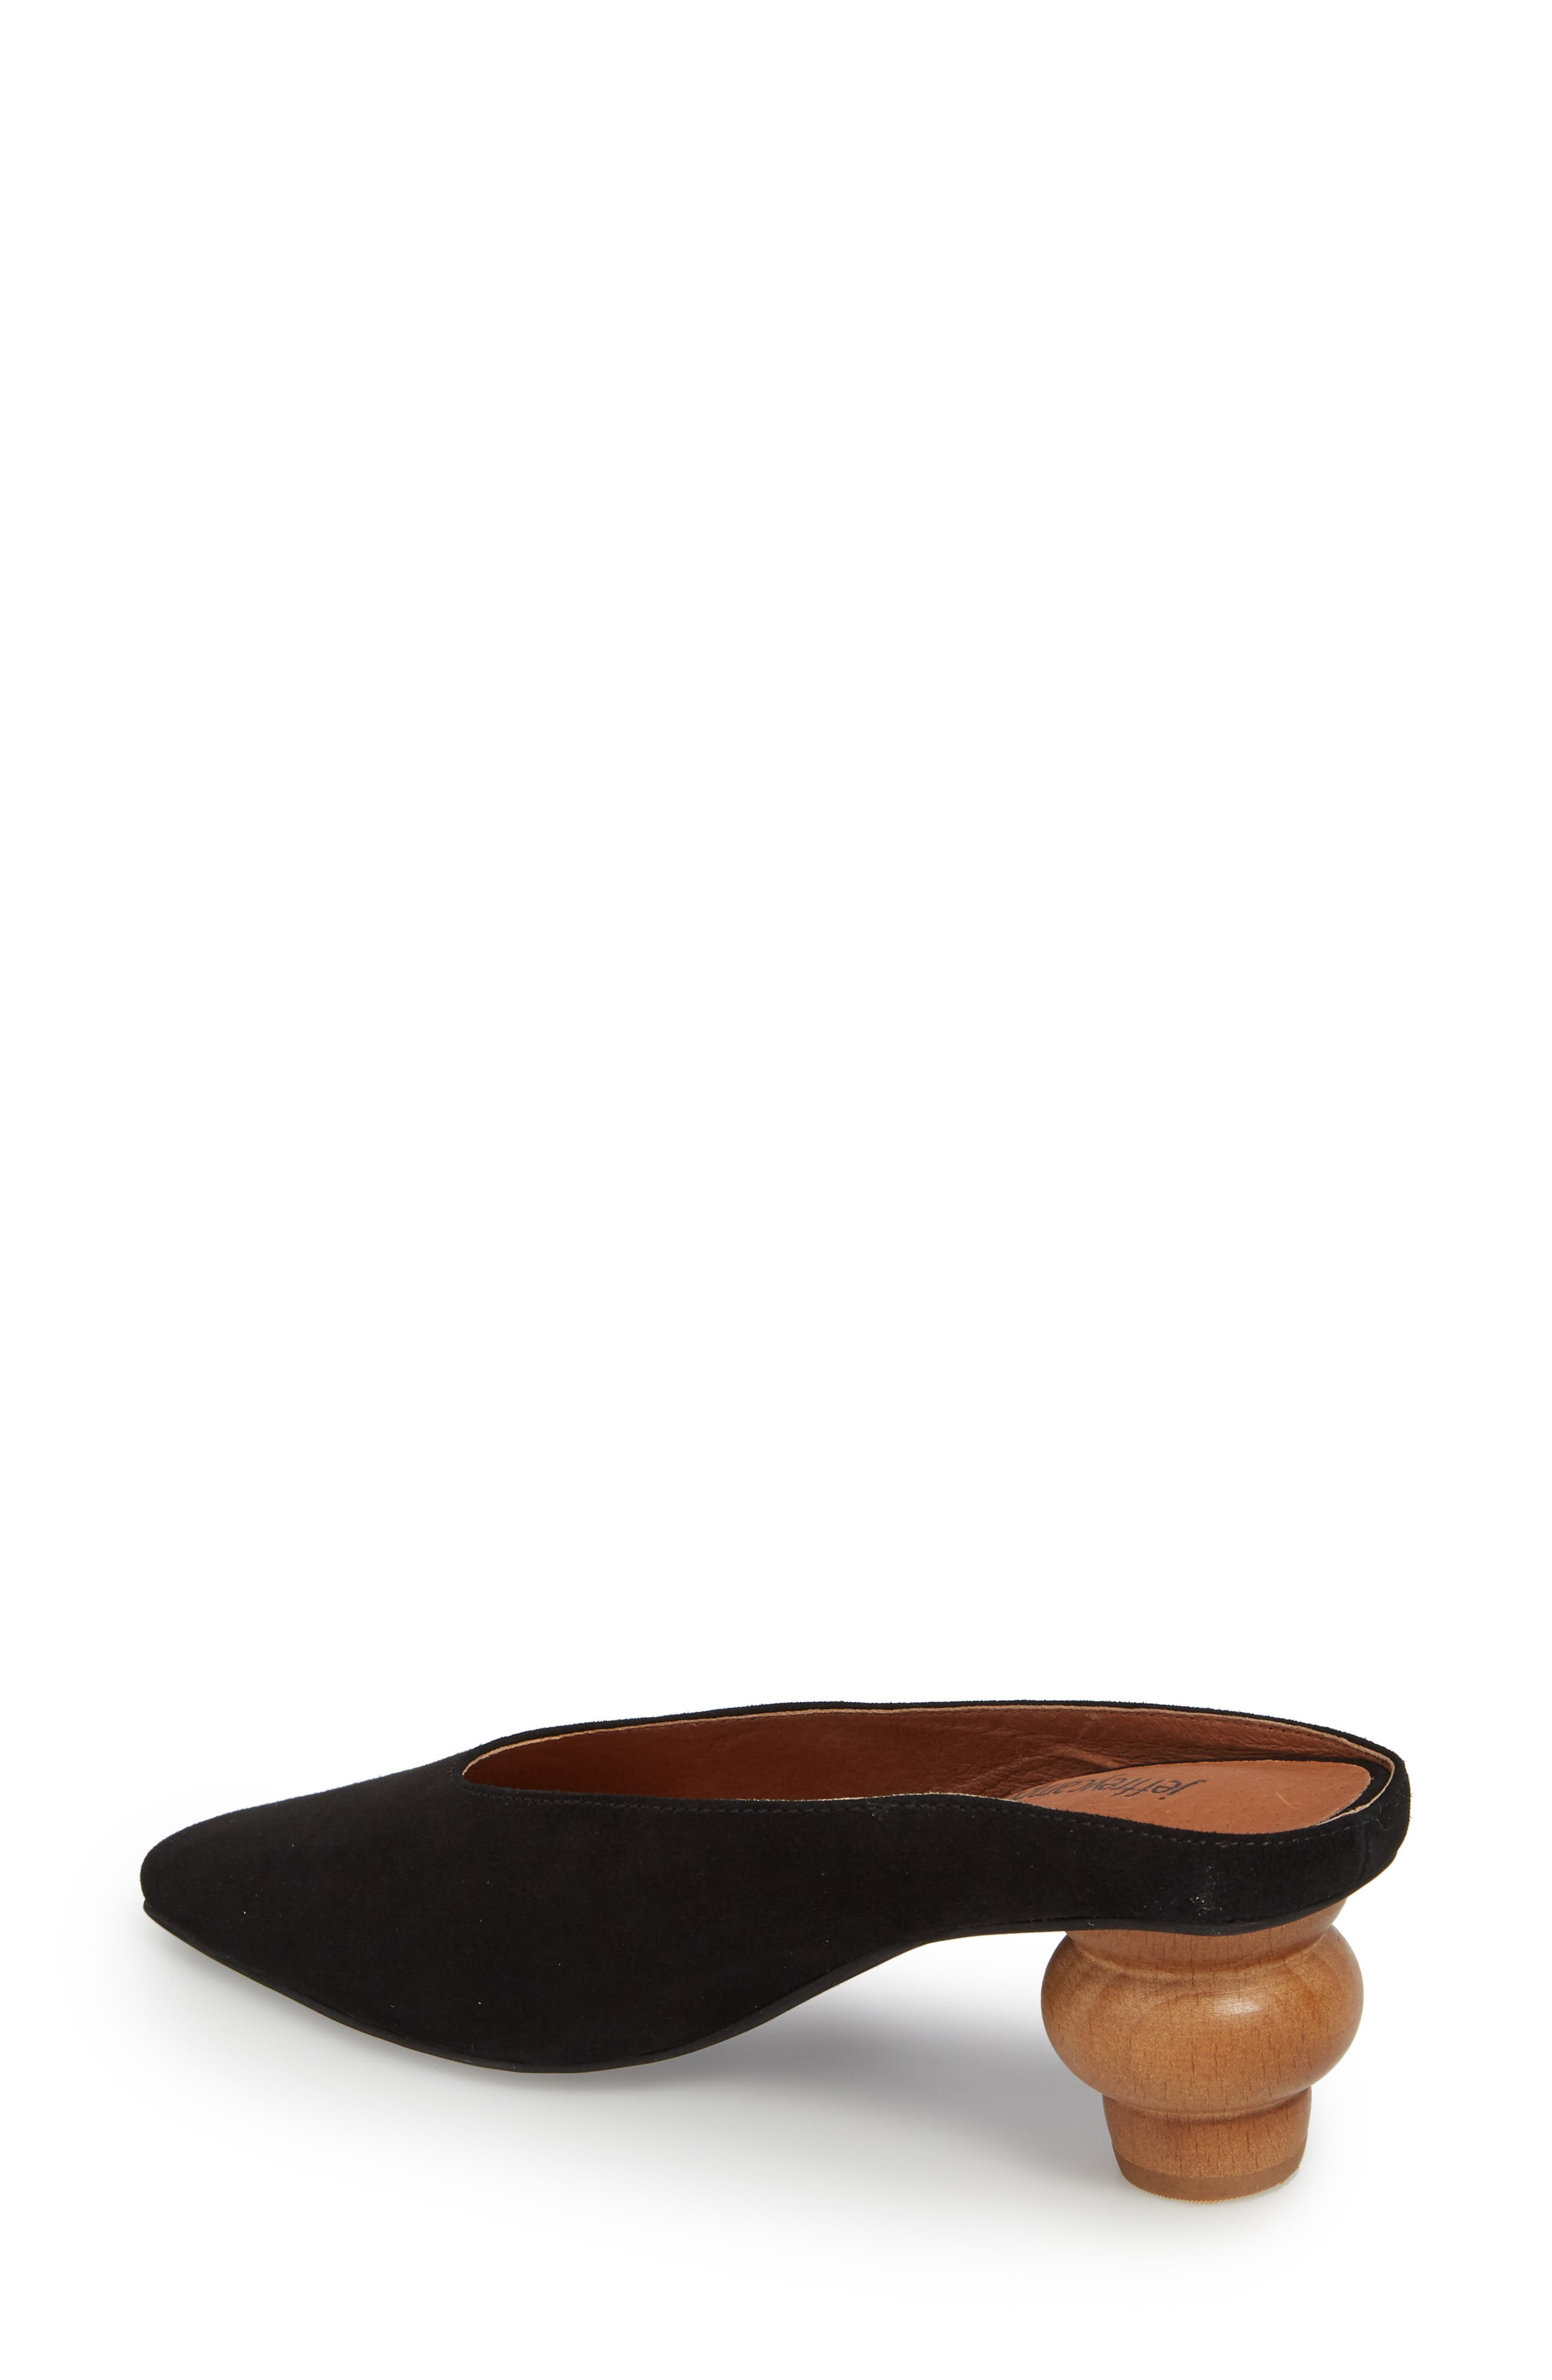 JEFFREY CAMPBELL,                             Cryptic Statement Heel Mule,                             Alternate thumbnail 2, color,                             005